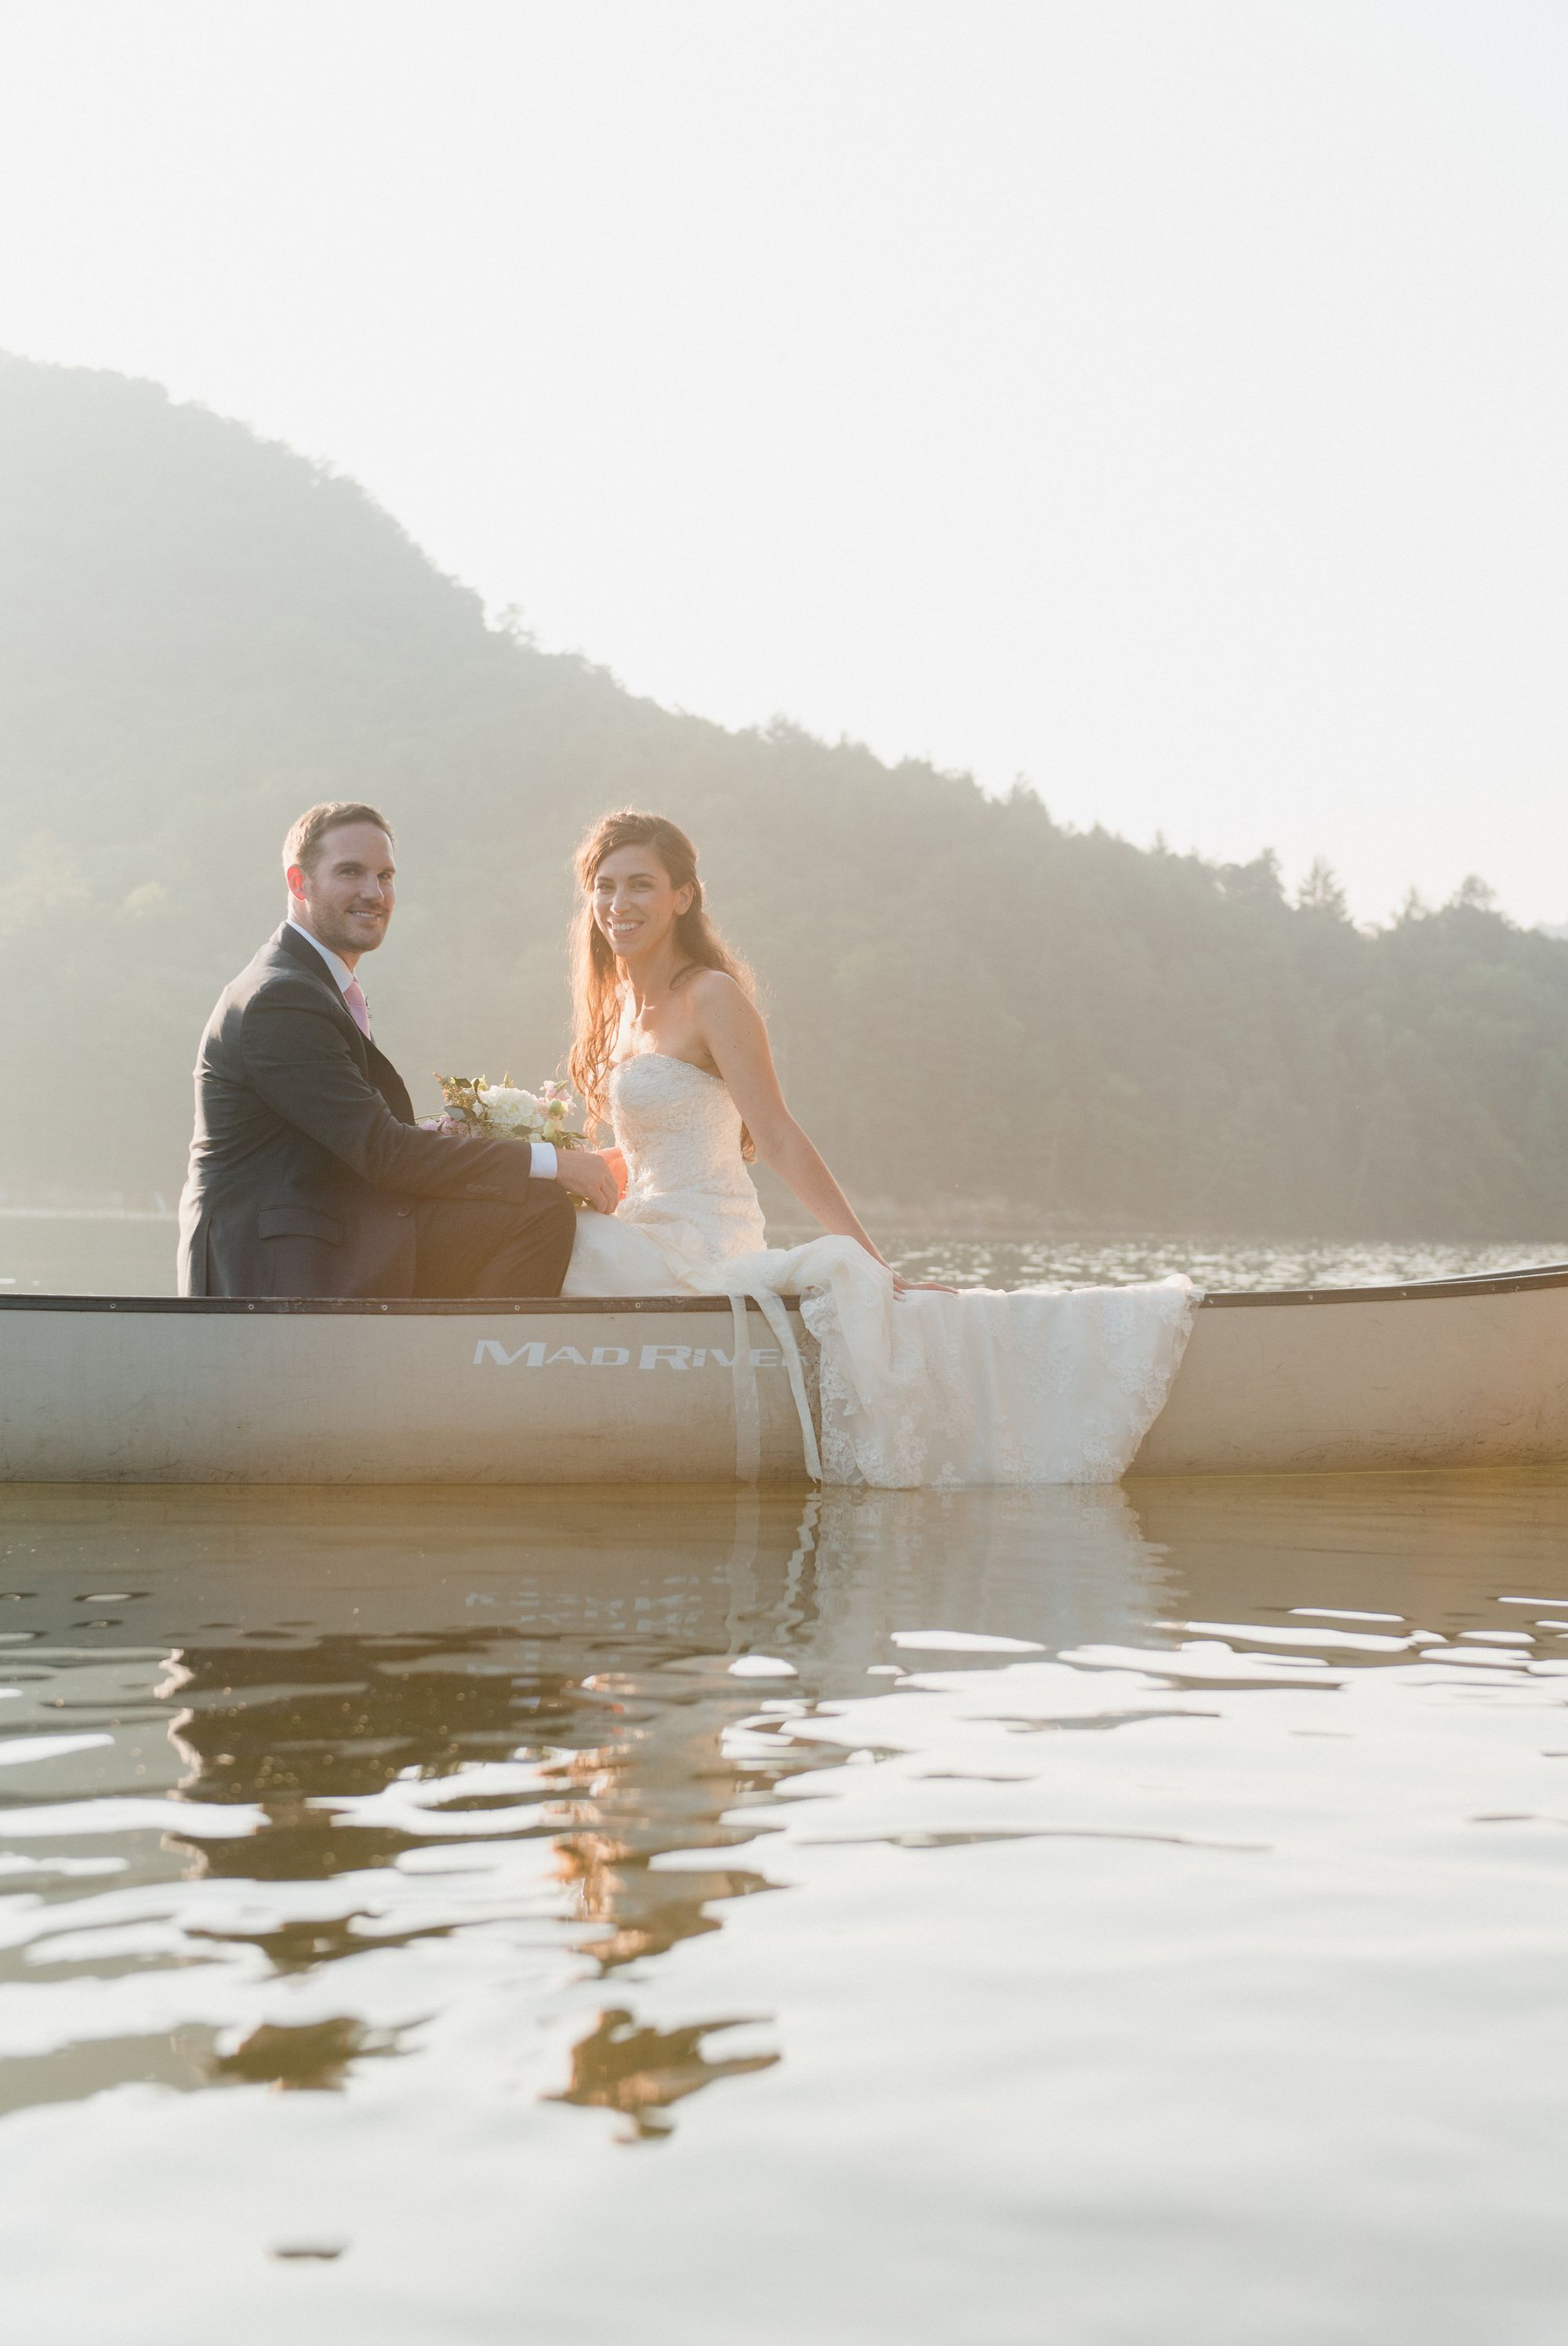 morning-after-wedding-session-in-canoe 32